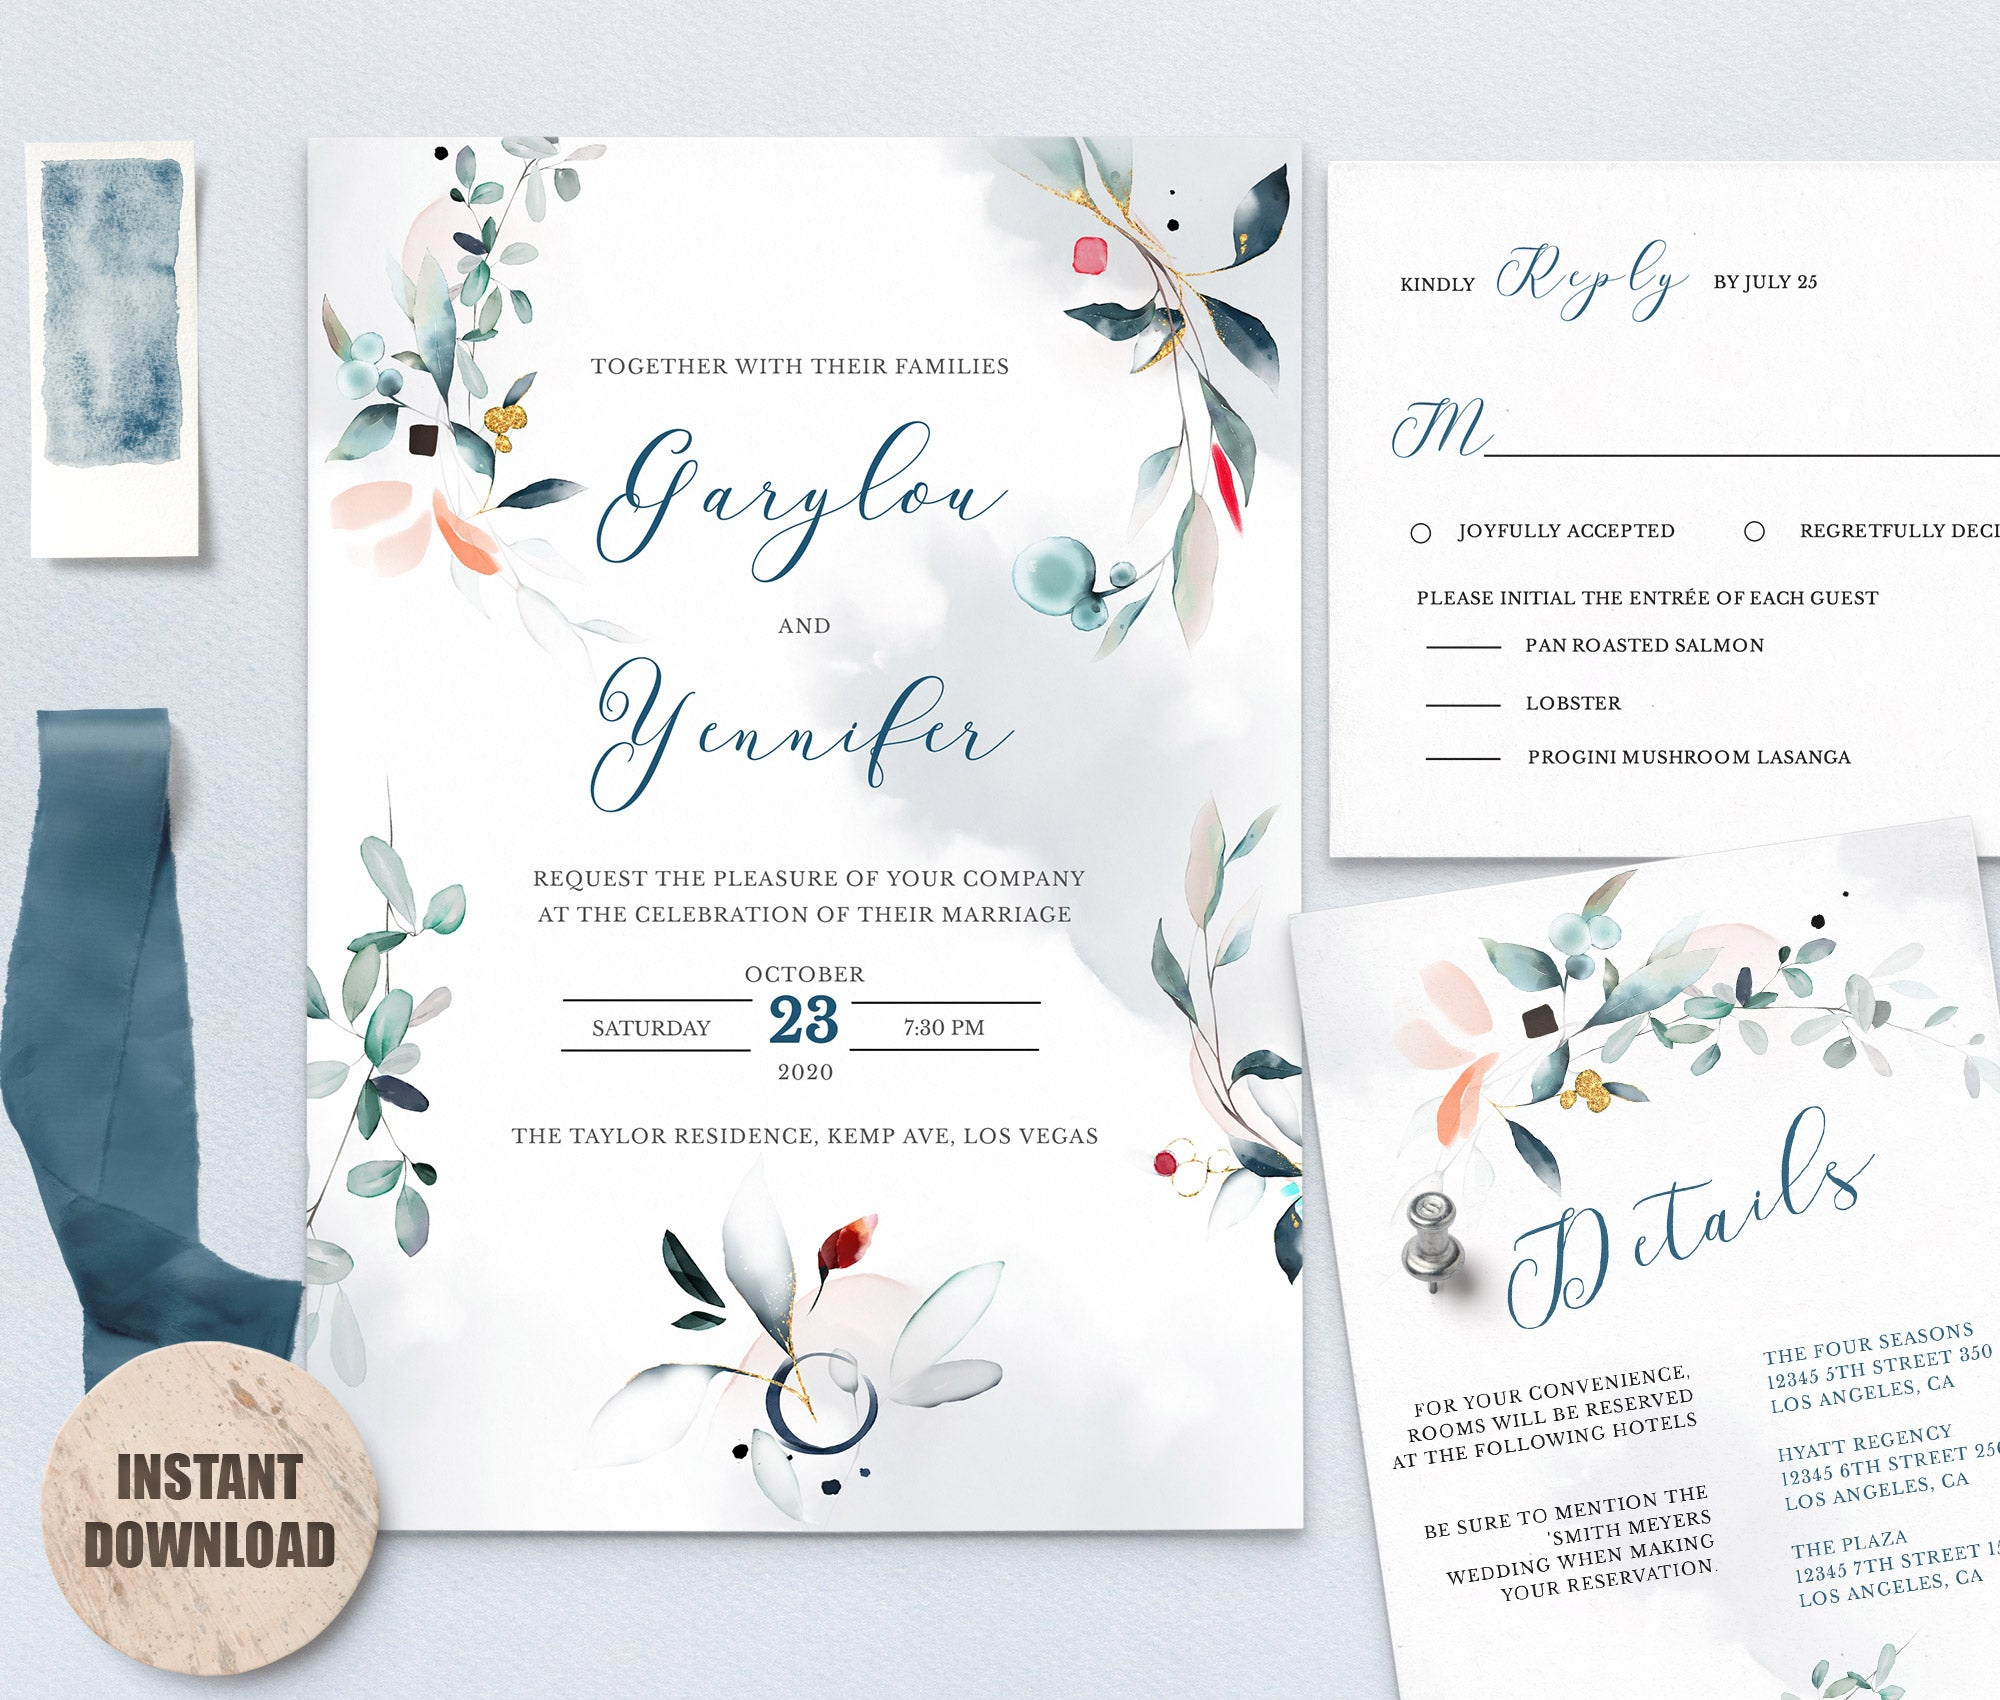 SPMR - Wedding Template Bundles set 10 - Greenlanderdesign